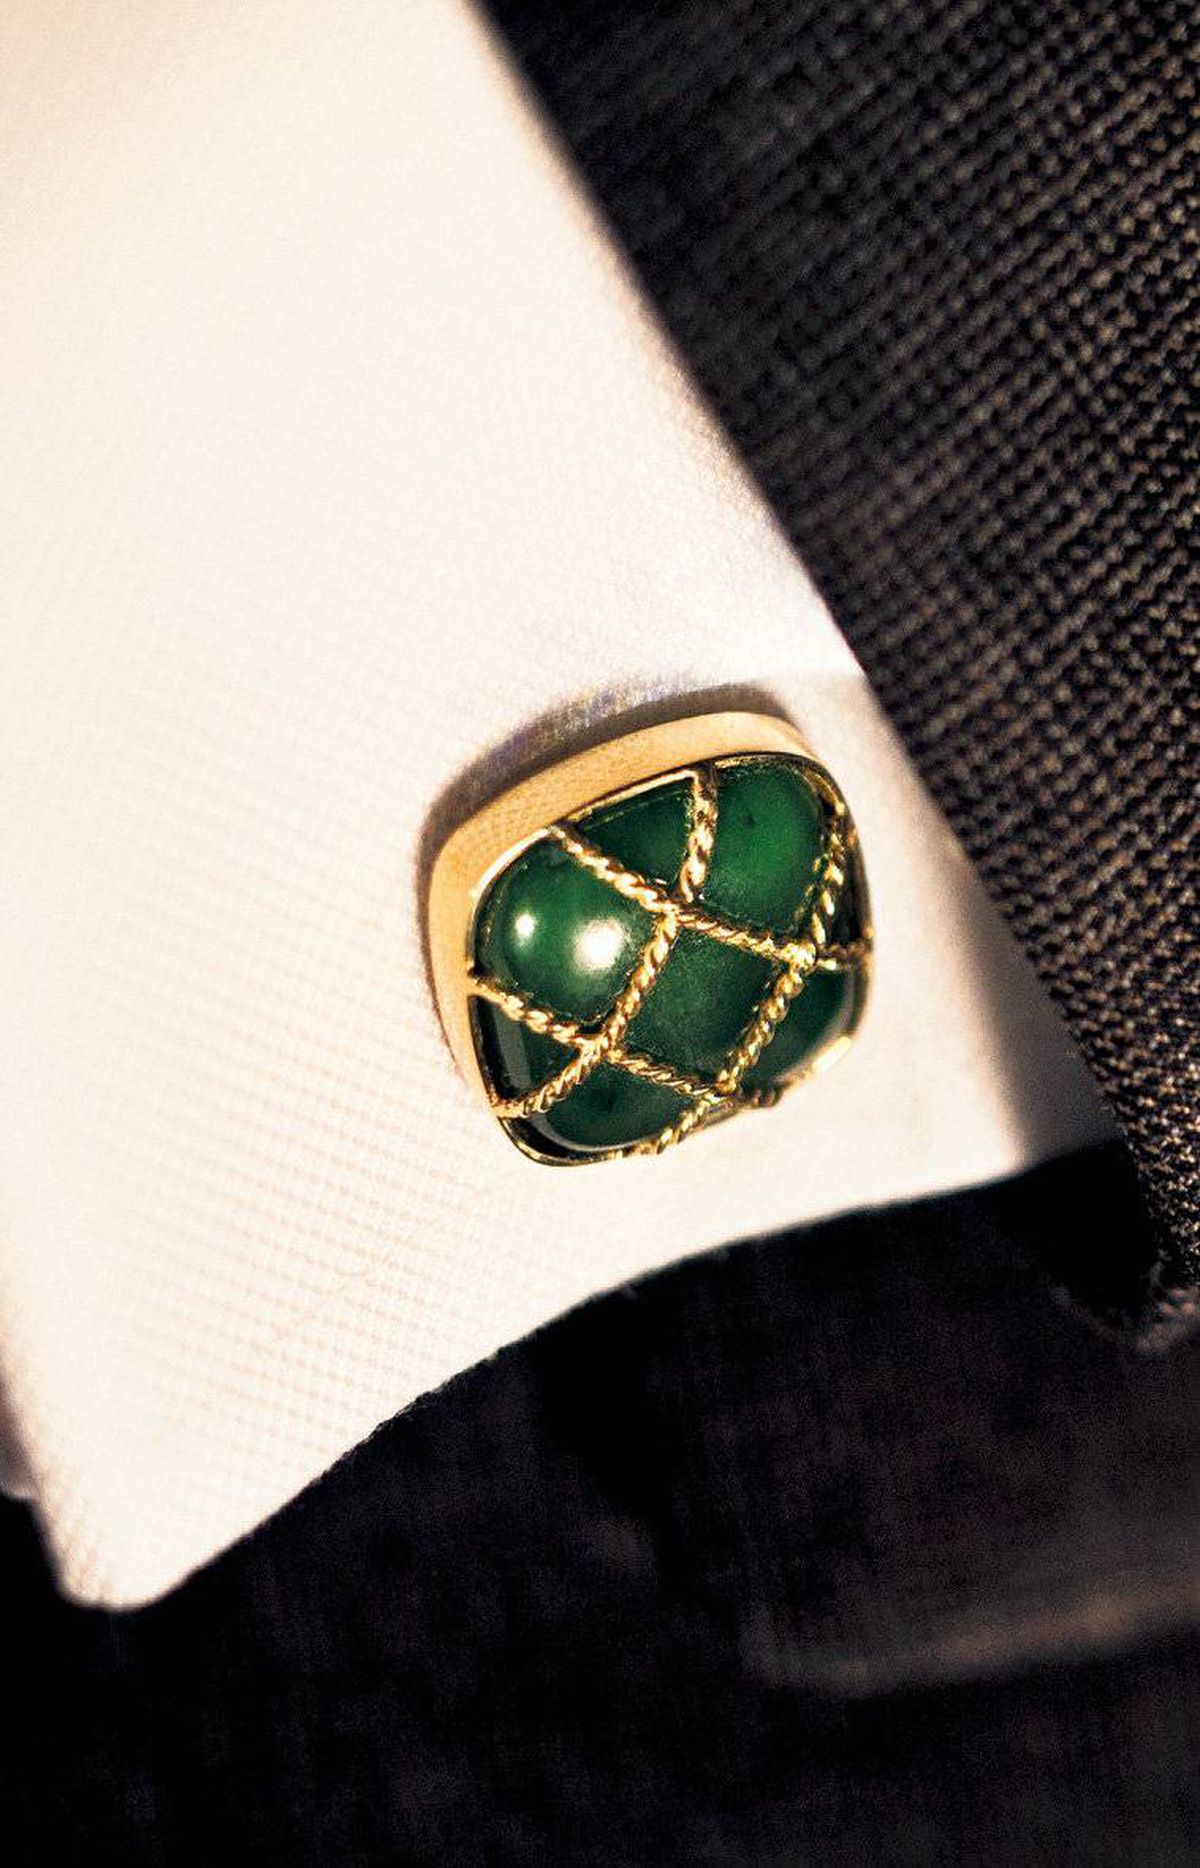 Classic cufflinks A man reveals a lot about his personality by his choice of cufflinks. Sure, animal shapes and pin-up images are conversation starters, but elegant and timeless? Not exactly. Instead, look for gemstones like chrysoprase and chalcedony. Here, a gold basket-weave design is set atop the cushion-shaped, hand-grooved stones. Myles Mindham nephrite cufflinks, $2,980 through www.mindham.com.